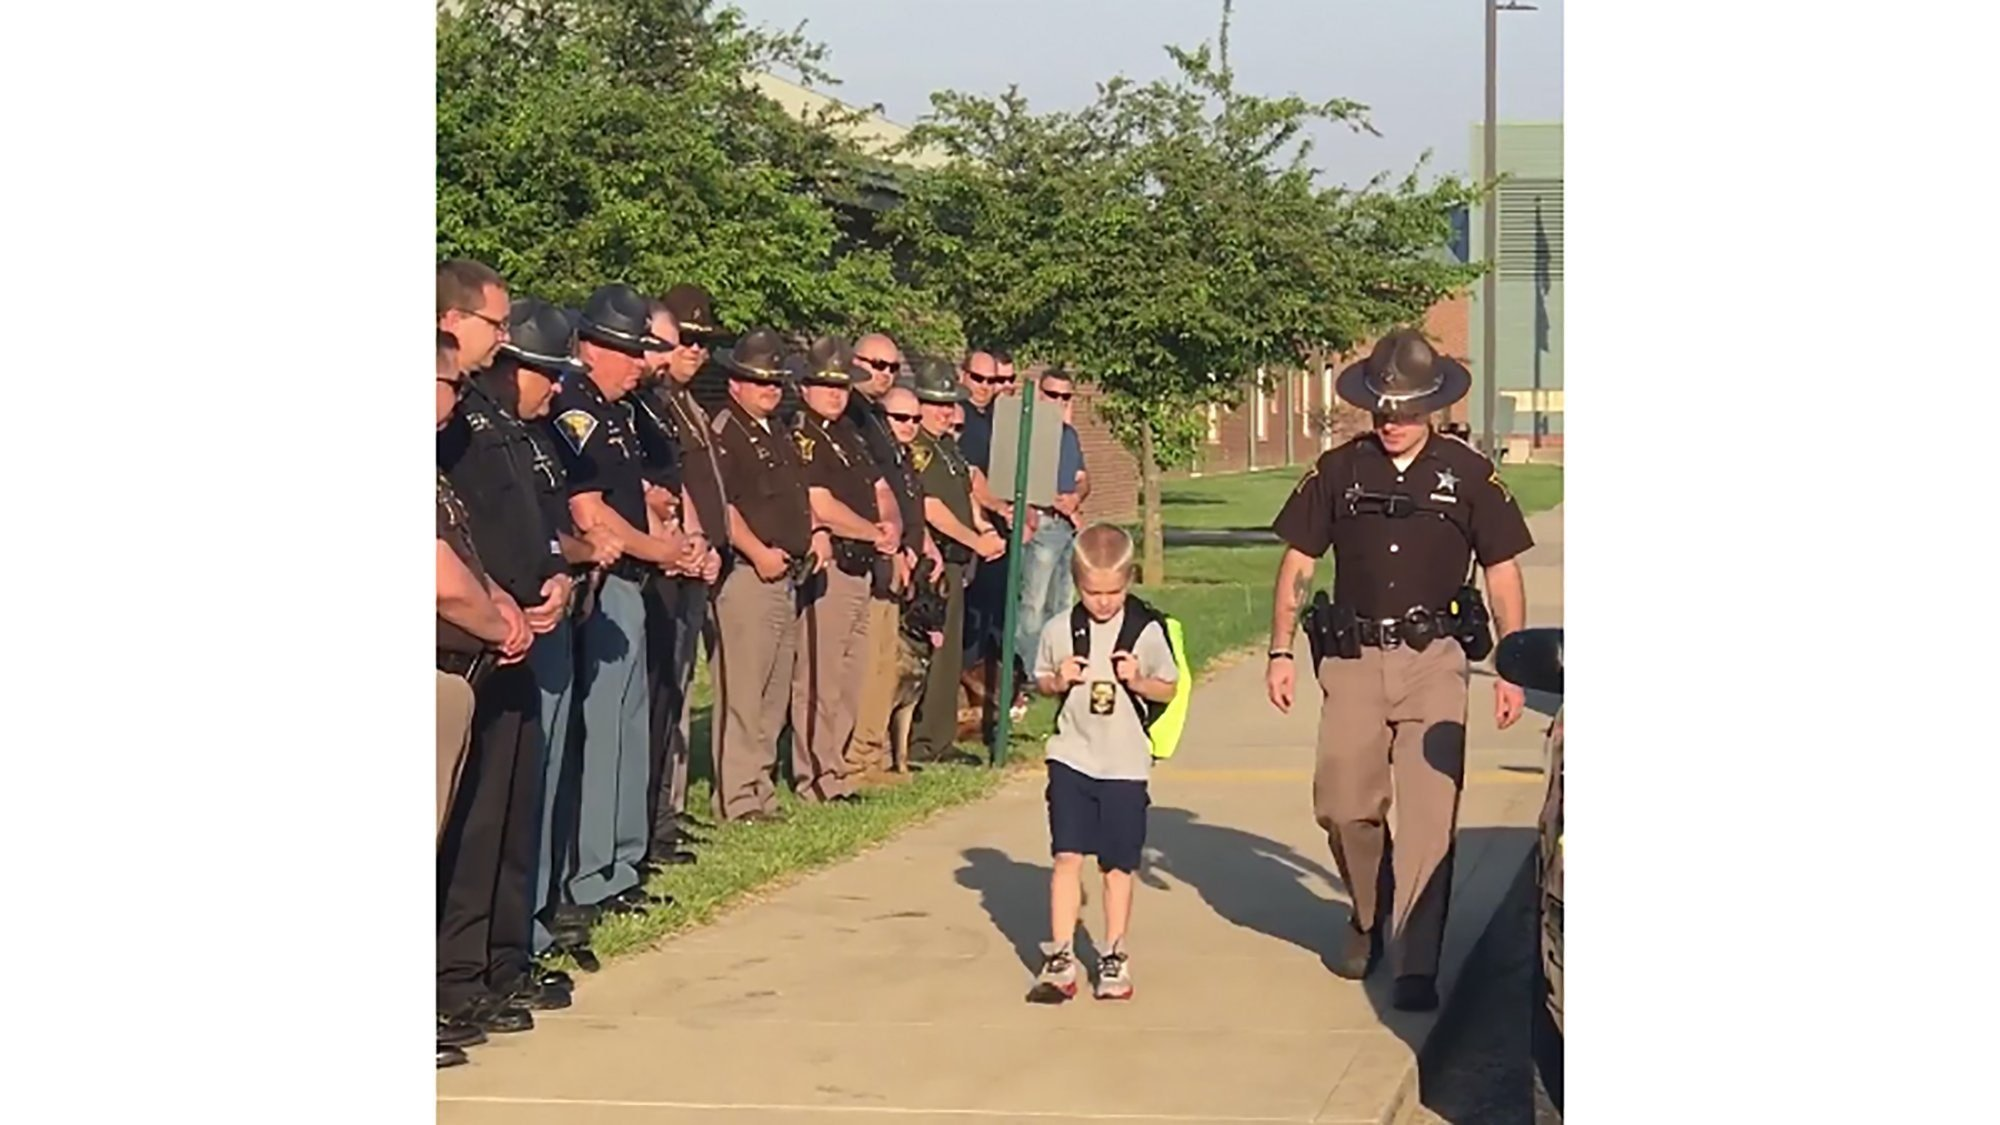 When Dakota Pitt's, 5, returned to school at Sullivan Elemntary School in western Indiana, for the first time after his police officer dad's death, 70 cops stood beside him  Credit: Samantha Phegley/Sulivan Elementary School